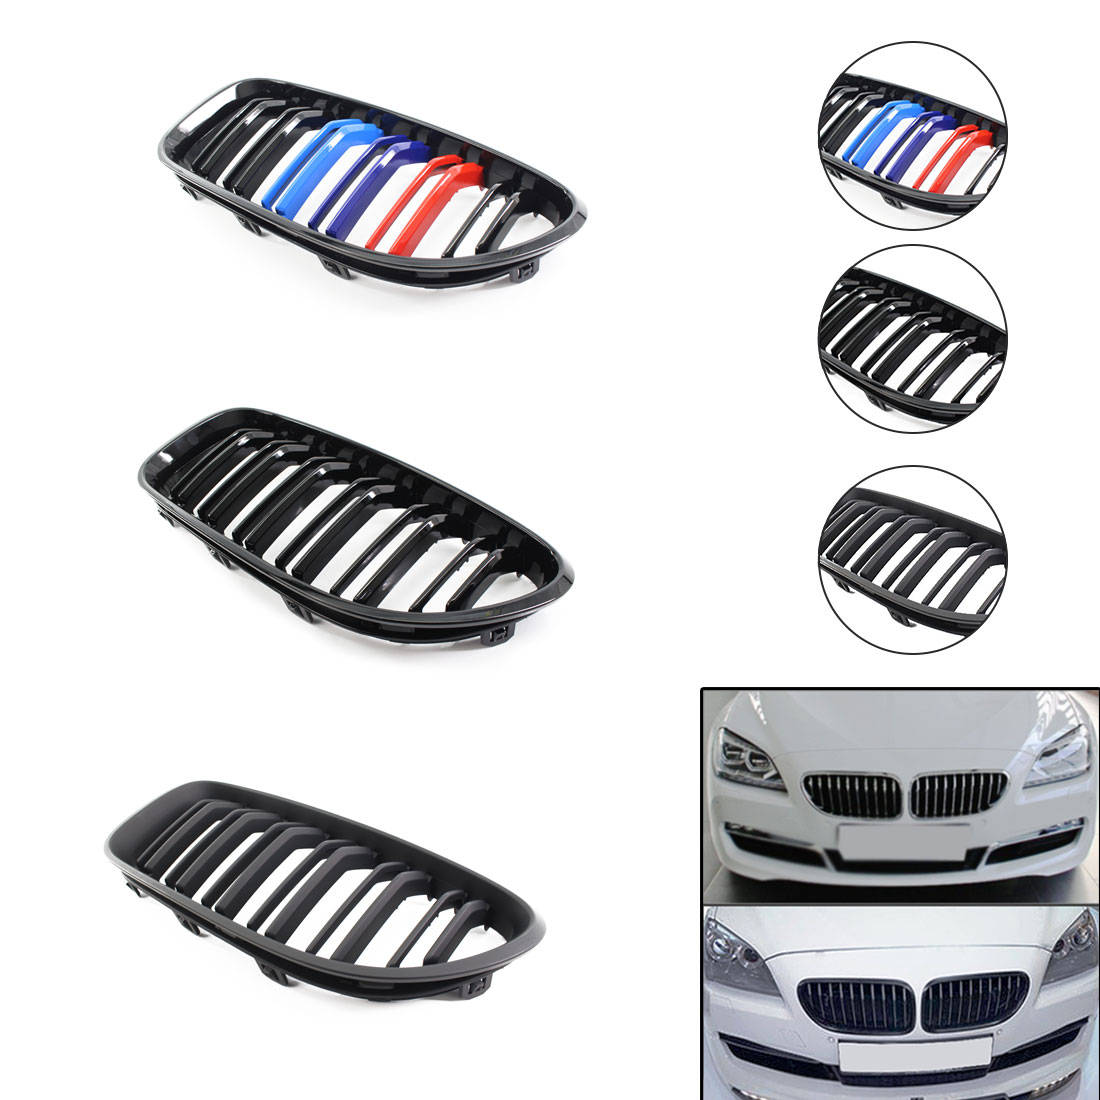 New Arrival Gloss Black Kidney Grill Racing Grille Dual Line For BMW 6 Series F06 F12 F13 12   16 Years|Racing Grills|   - title=